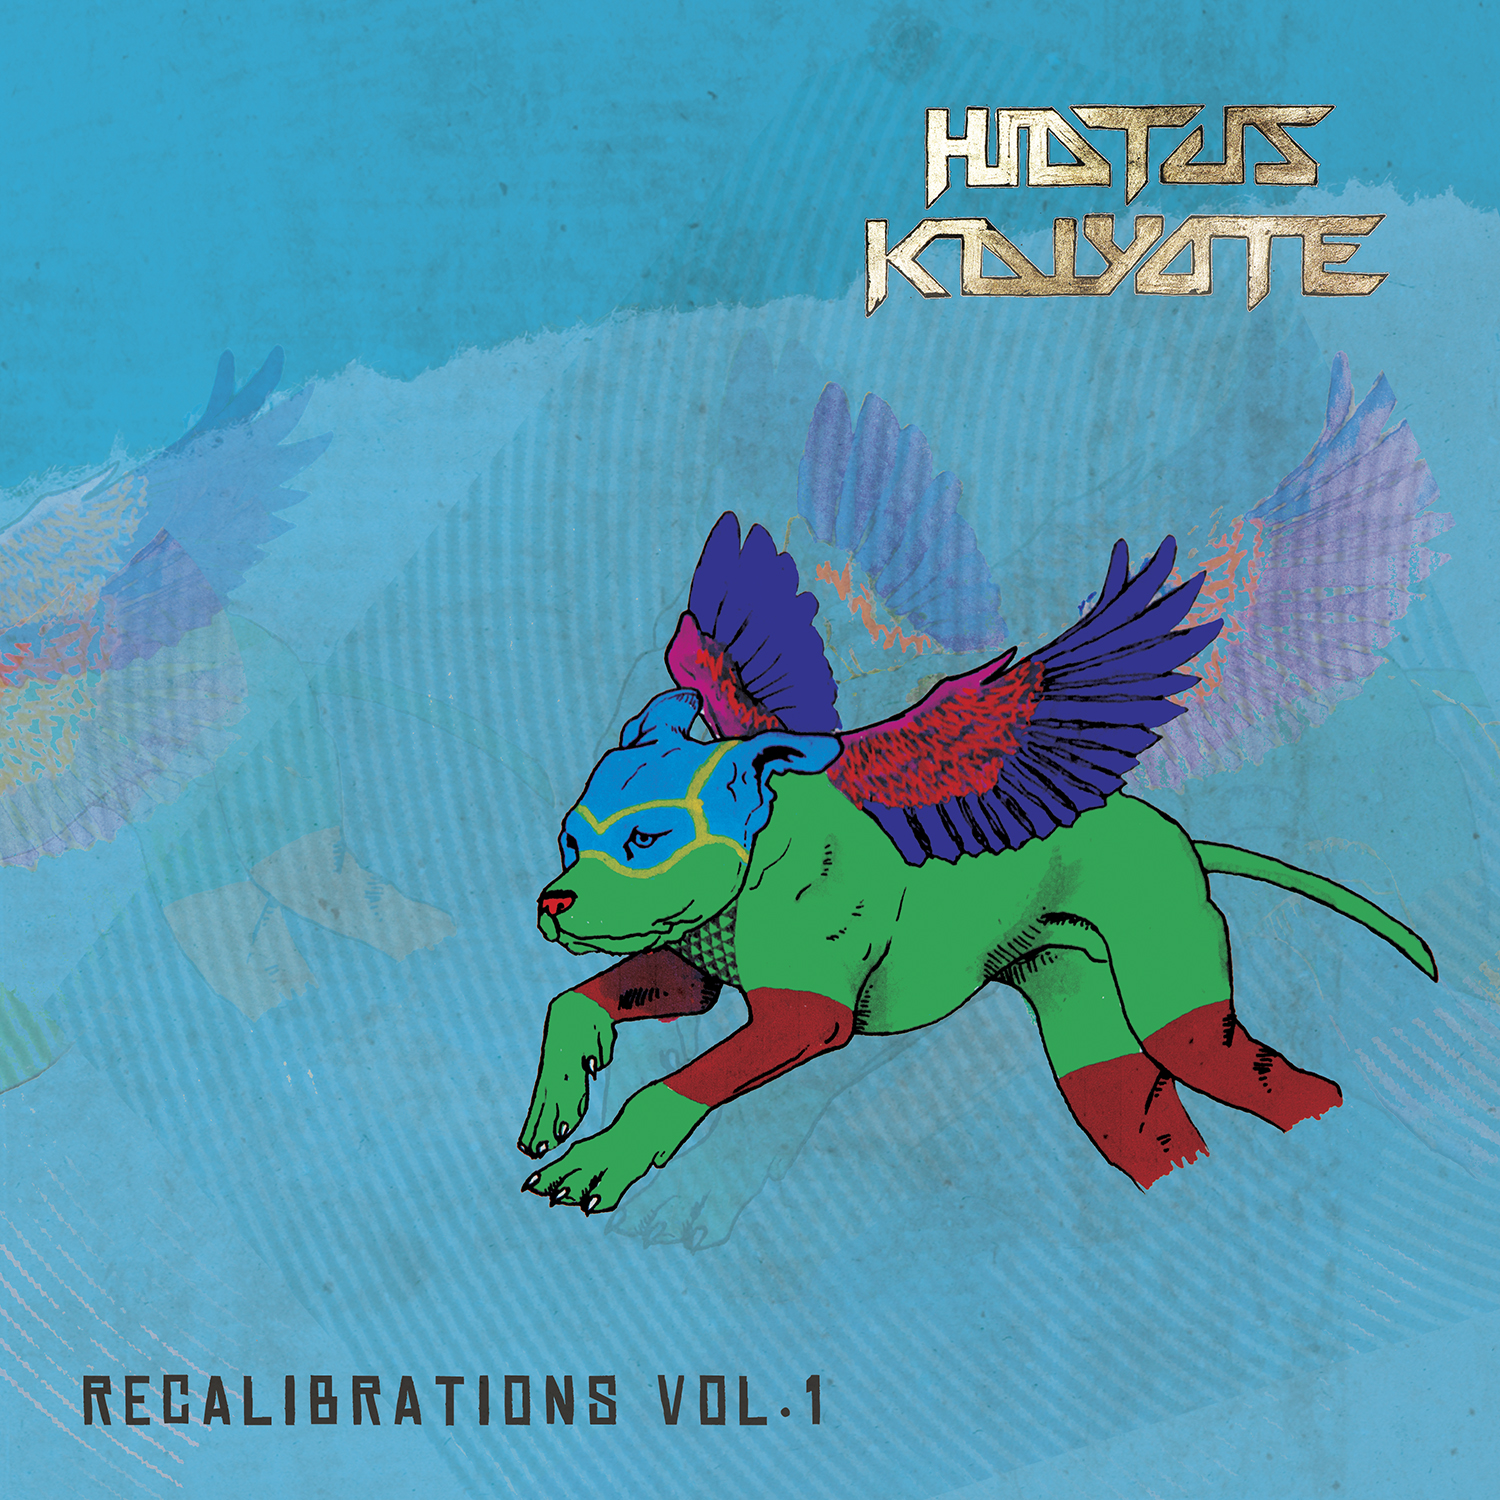 HIATUS KAIYOTE NEW EP – RECALIBRATIONS VOL. 1 VINYL FEATURING TAYLOR MCFERRIN, ANDERSON PAAK & VIKTER DUPLAIX OUT TODAY